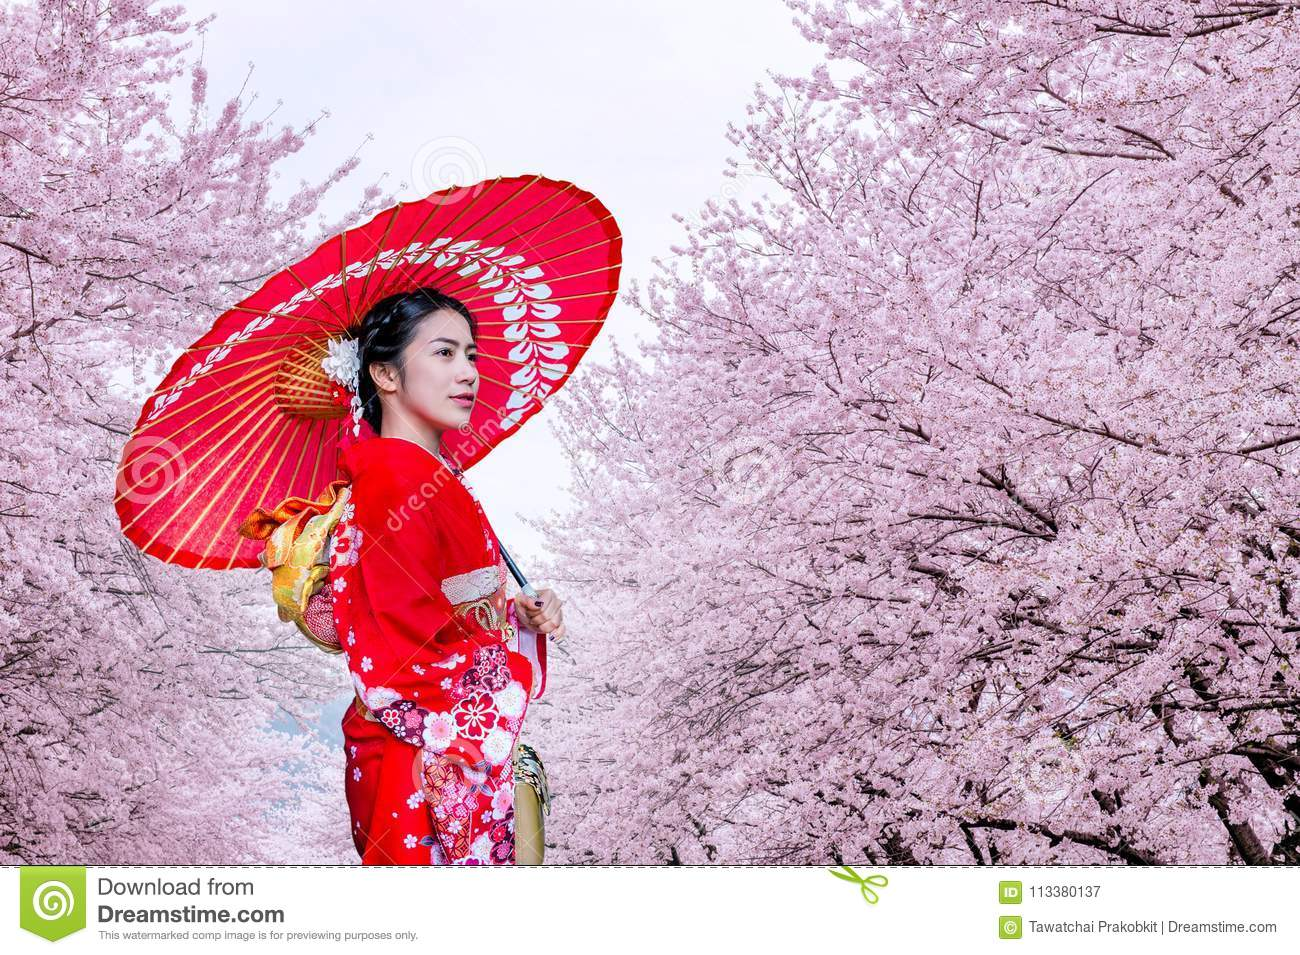 Asian woman wearing japanese traditional kimono and cherry blossom in spring, Japan